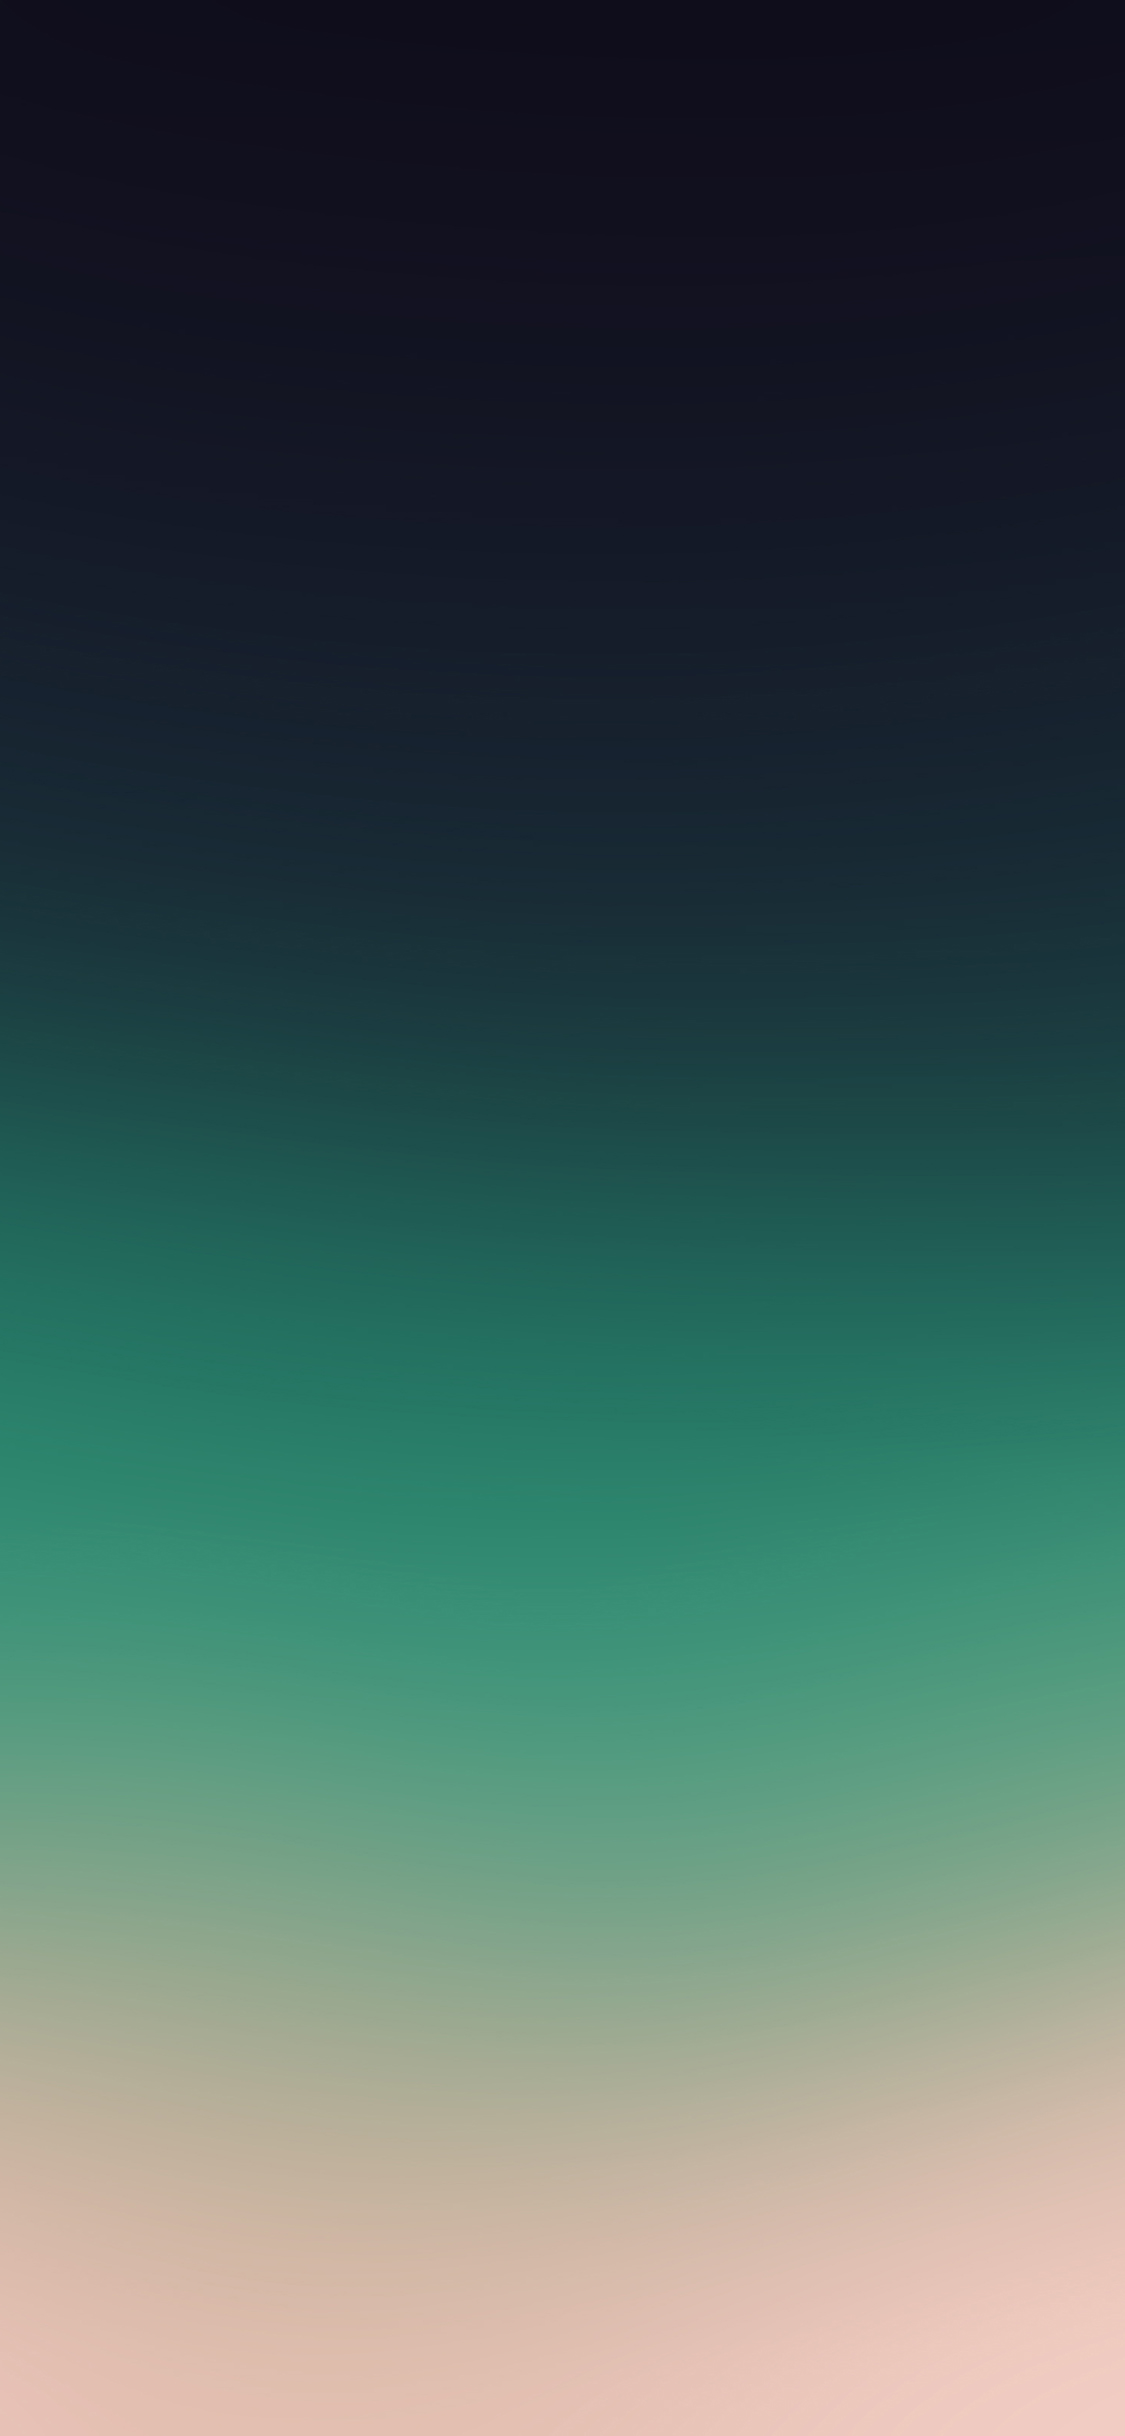 iPhoneXpapers.com-Apple-iPhone-wallpaper-sc98-green-peace-gradation-blur